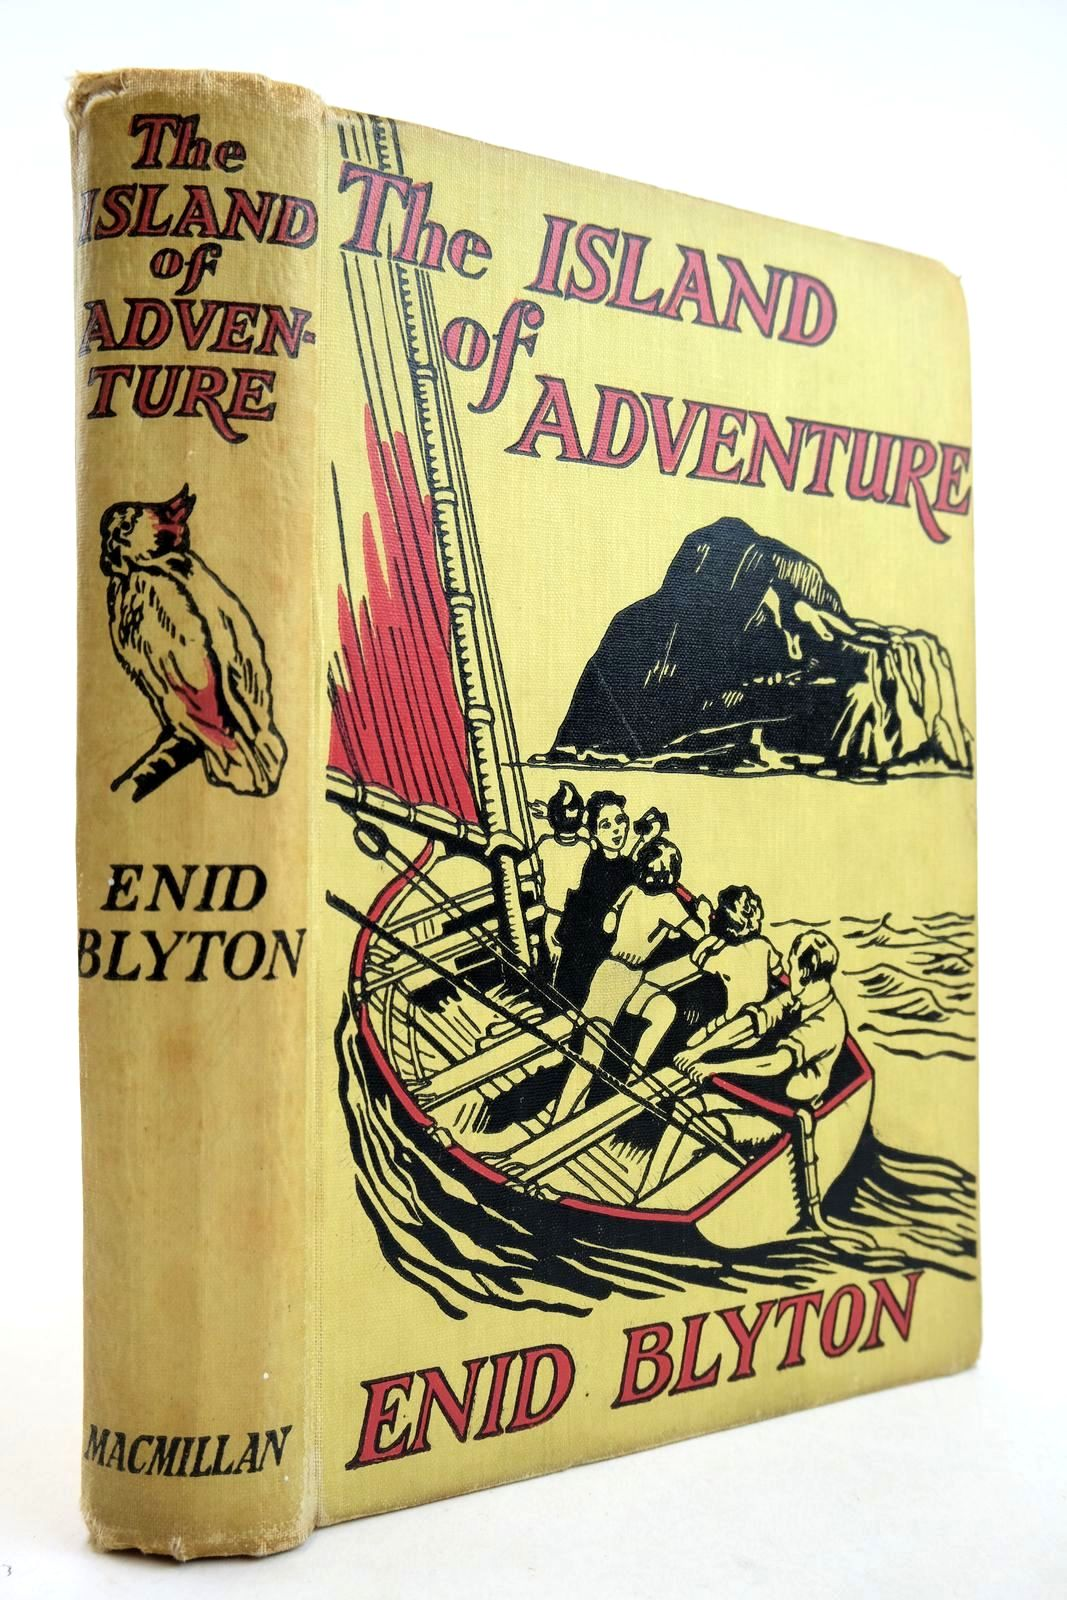 Photo of THE ISLAND OF ADVENTURE written by Blyton, Enid illustrated by Tresilian, Stuart published by Macmillan & Co. Ltd. (STOCK CODE: 2133200)  for sale by Stella & Rose's Books